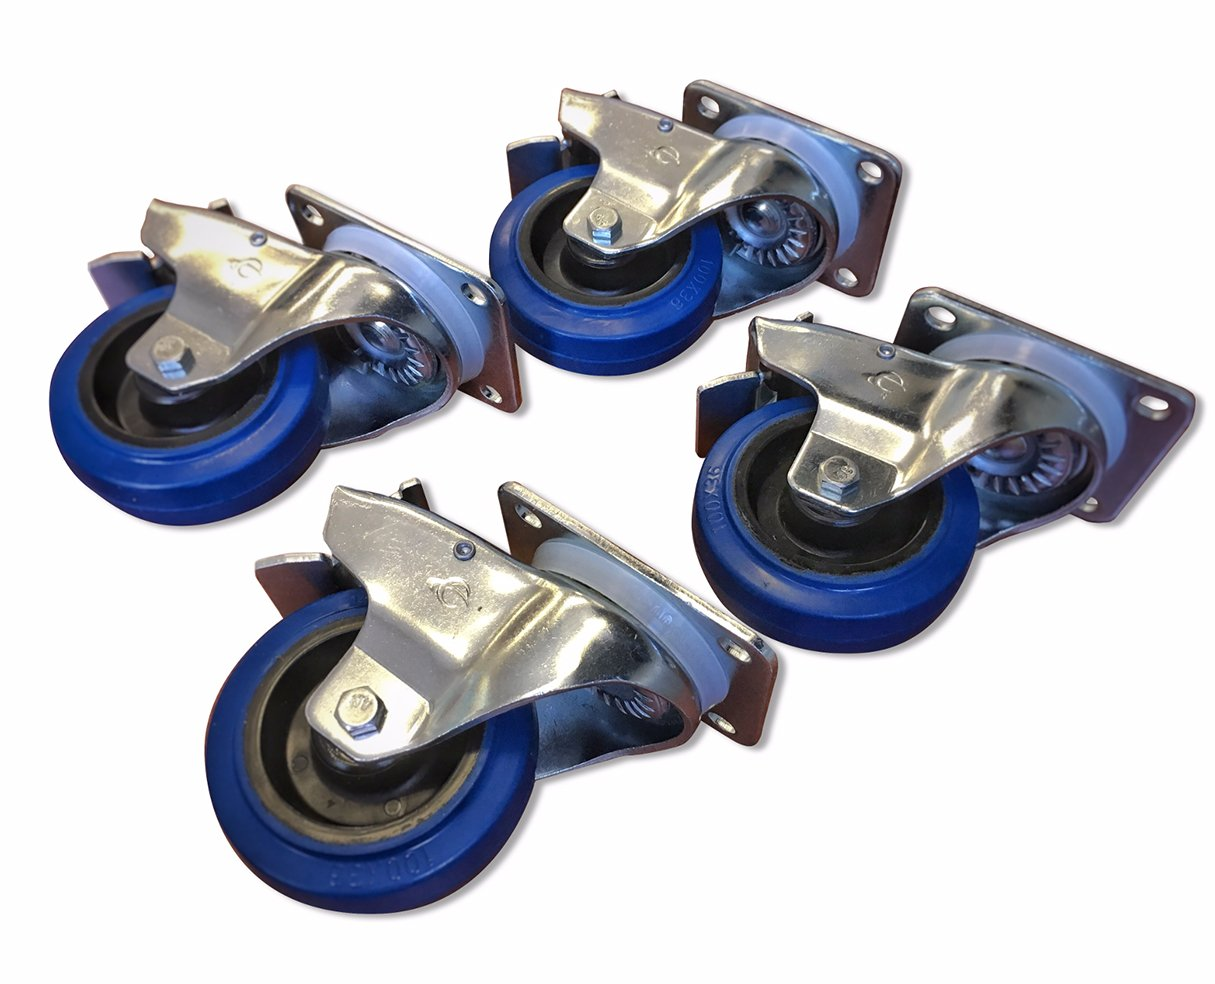 RCF SUB 8006-AS Cover + Casters 4-Pack by RCF (Image #3)